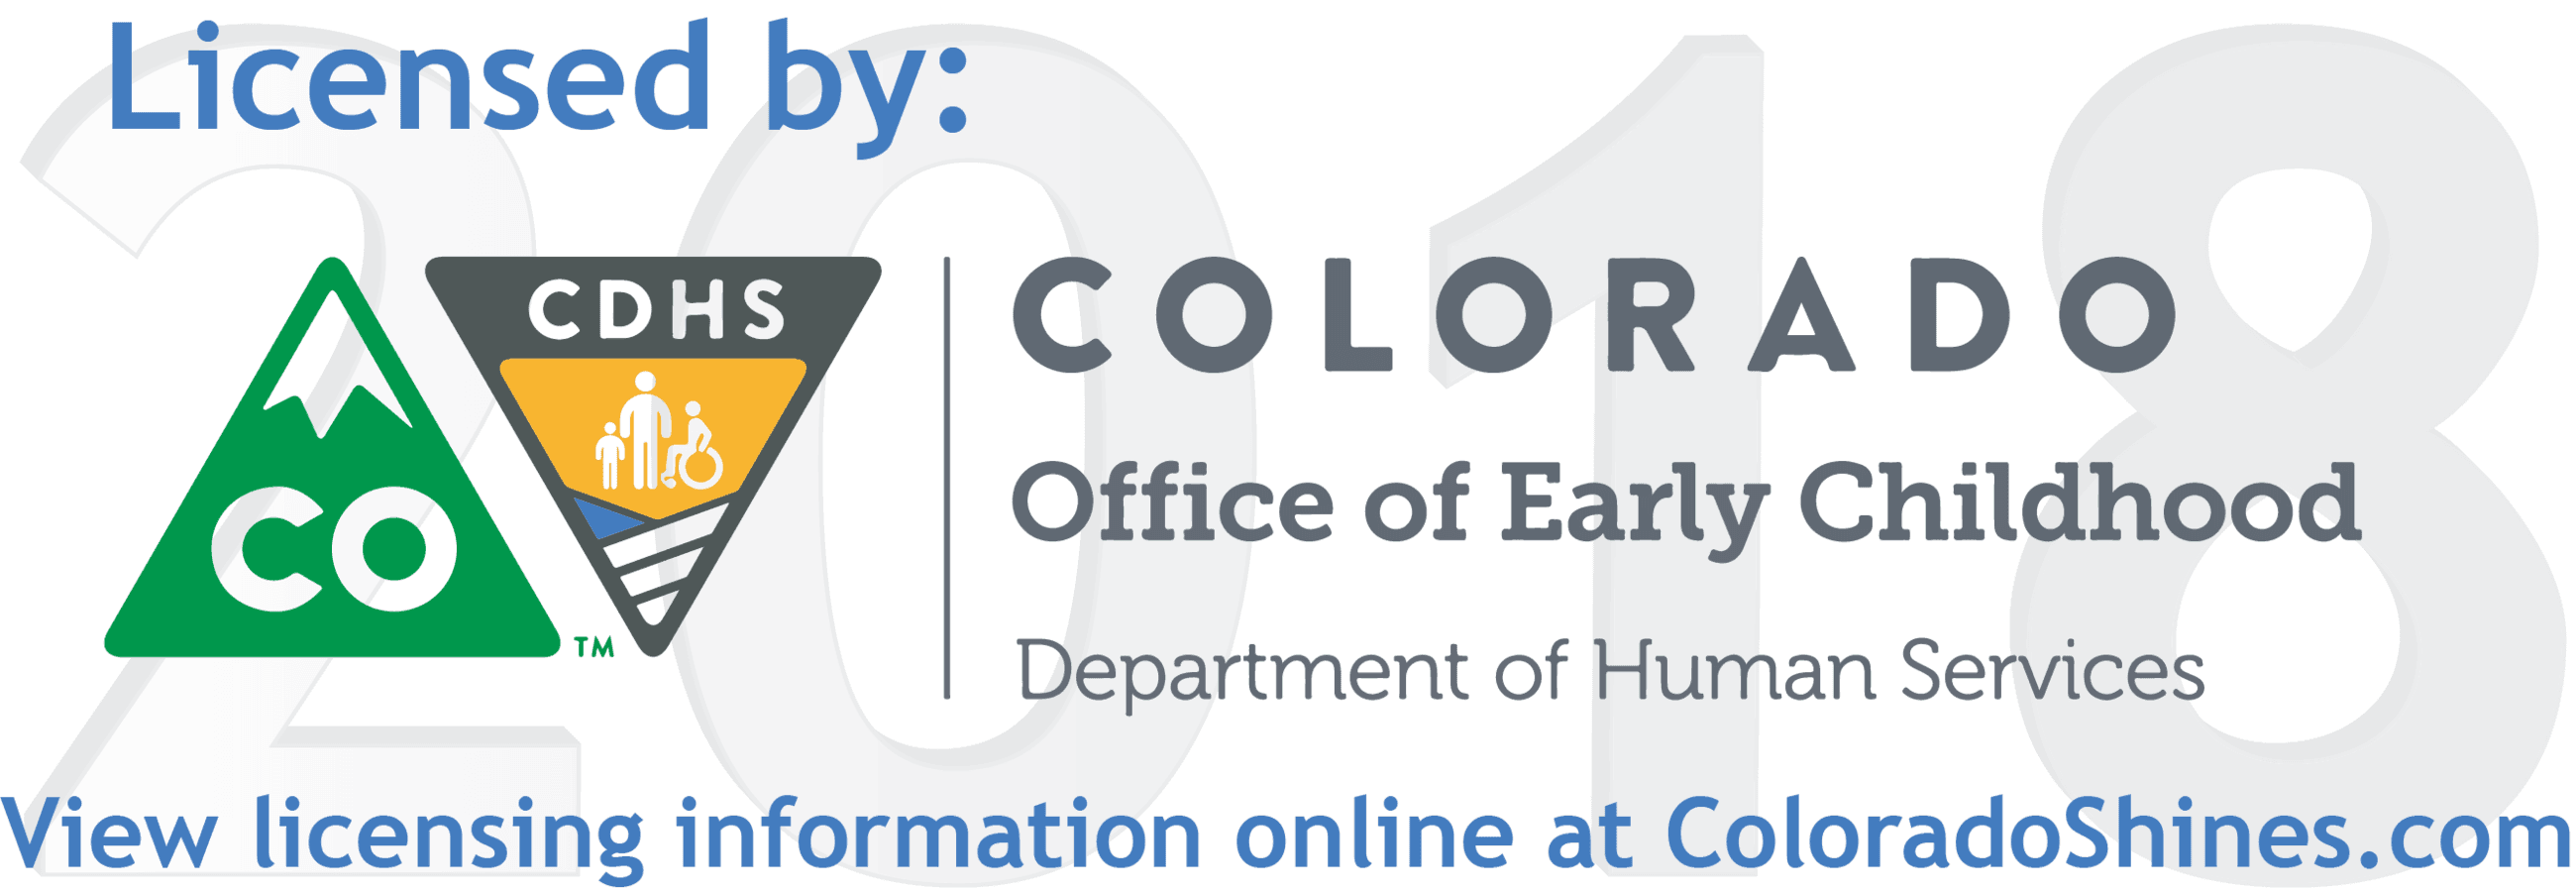 CDHS-OEC-TransparentbackgroundLicensedbylogogradiant2018